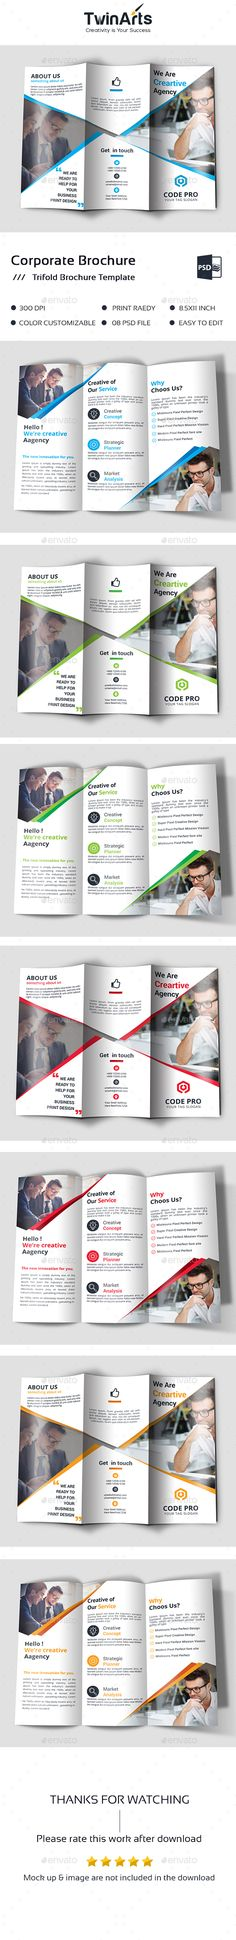 Trifold Bundle Brochure template, Templates and Brochures - university brochure template